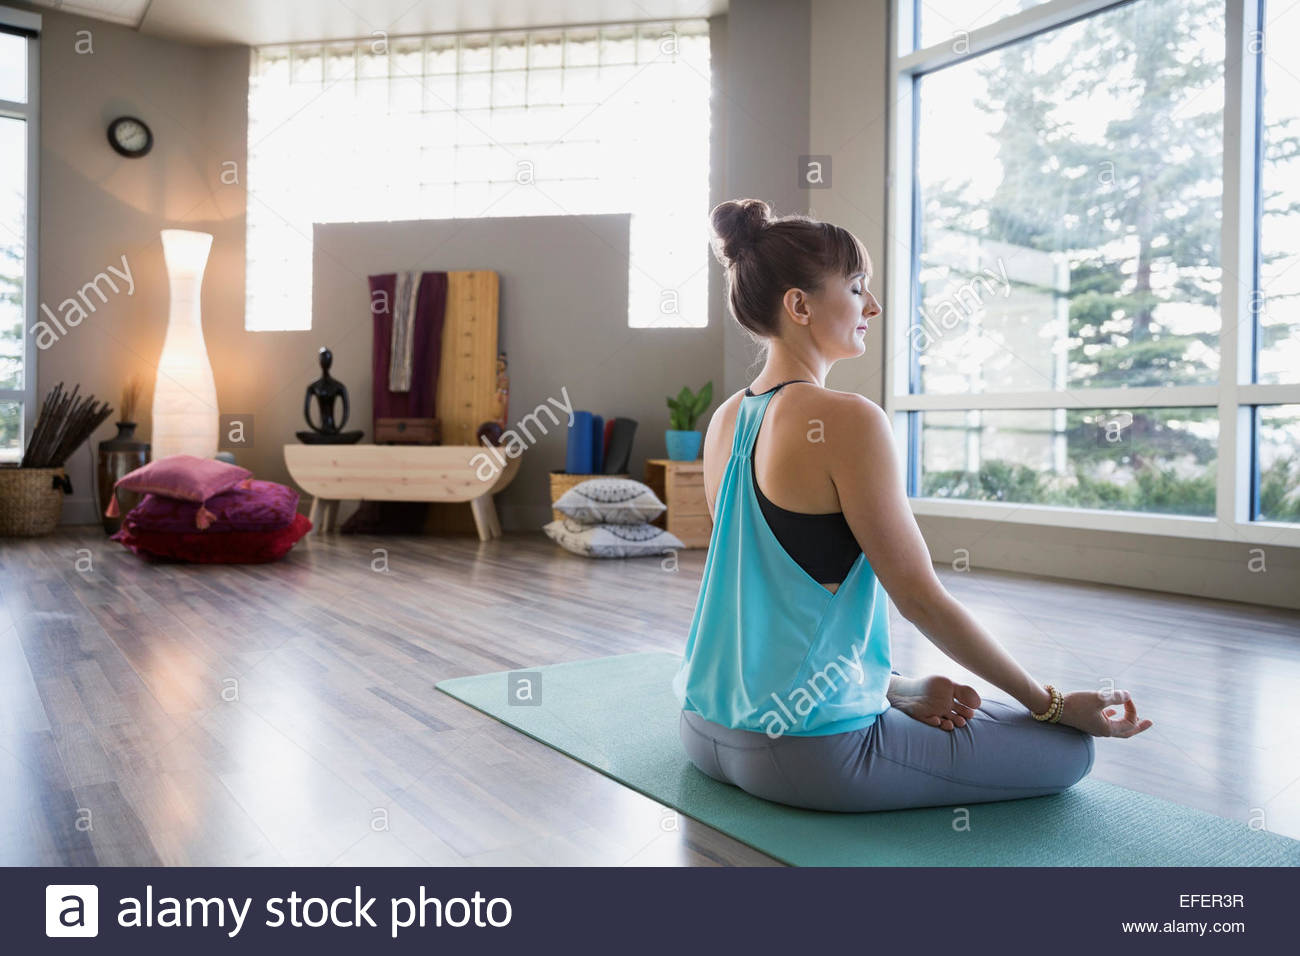 Woman meditating in mudra lotus position - Stock Image